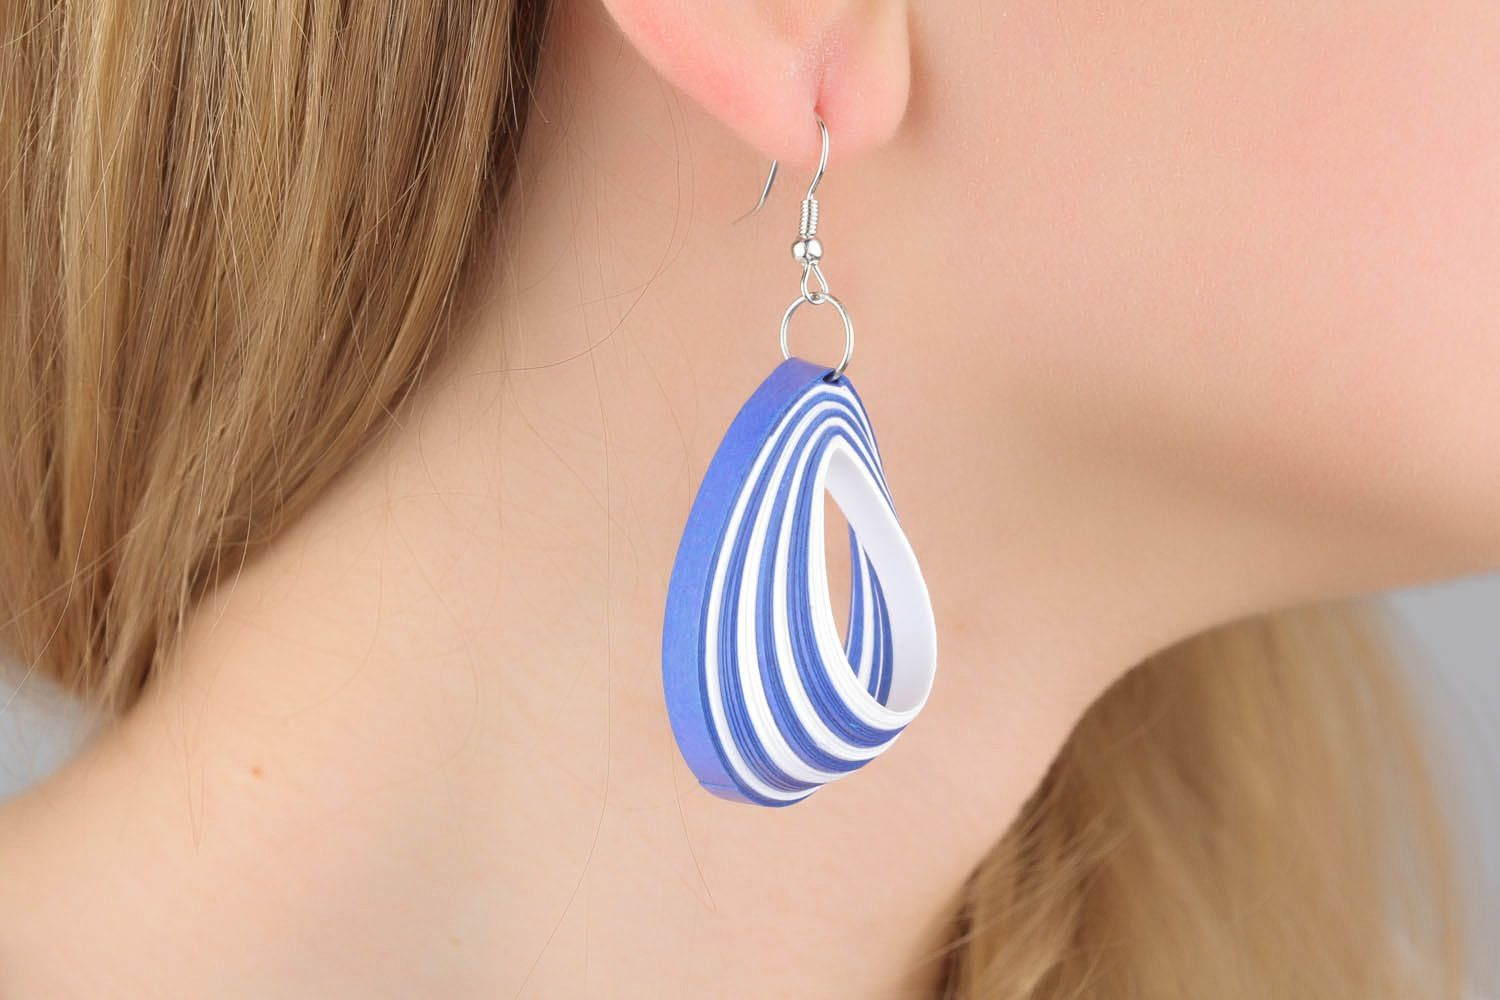 Oval earrings photo 1